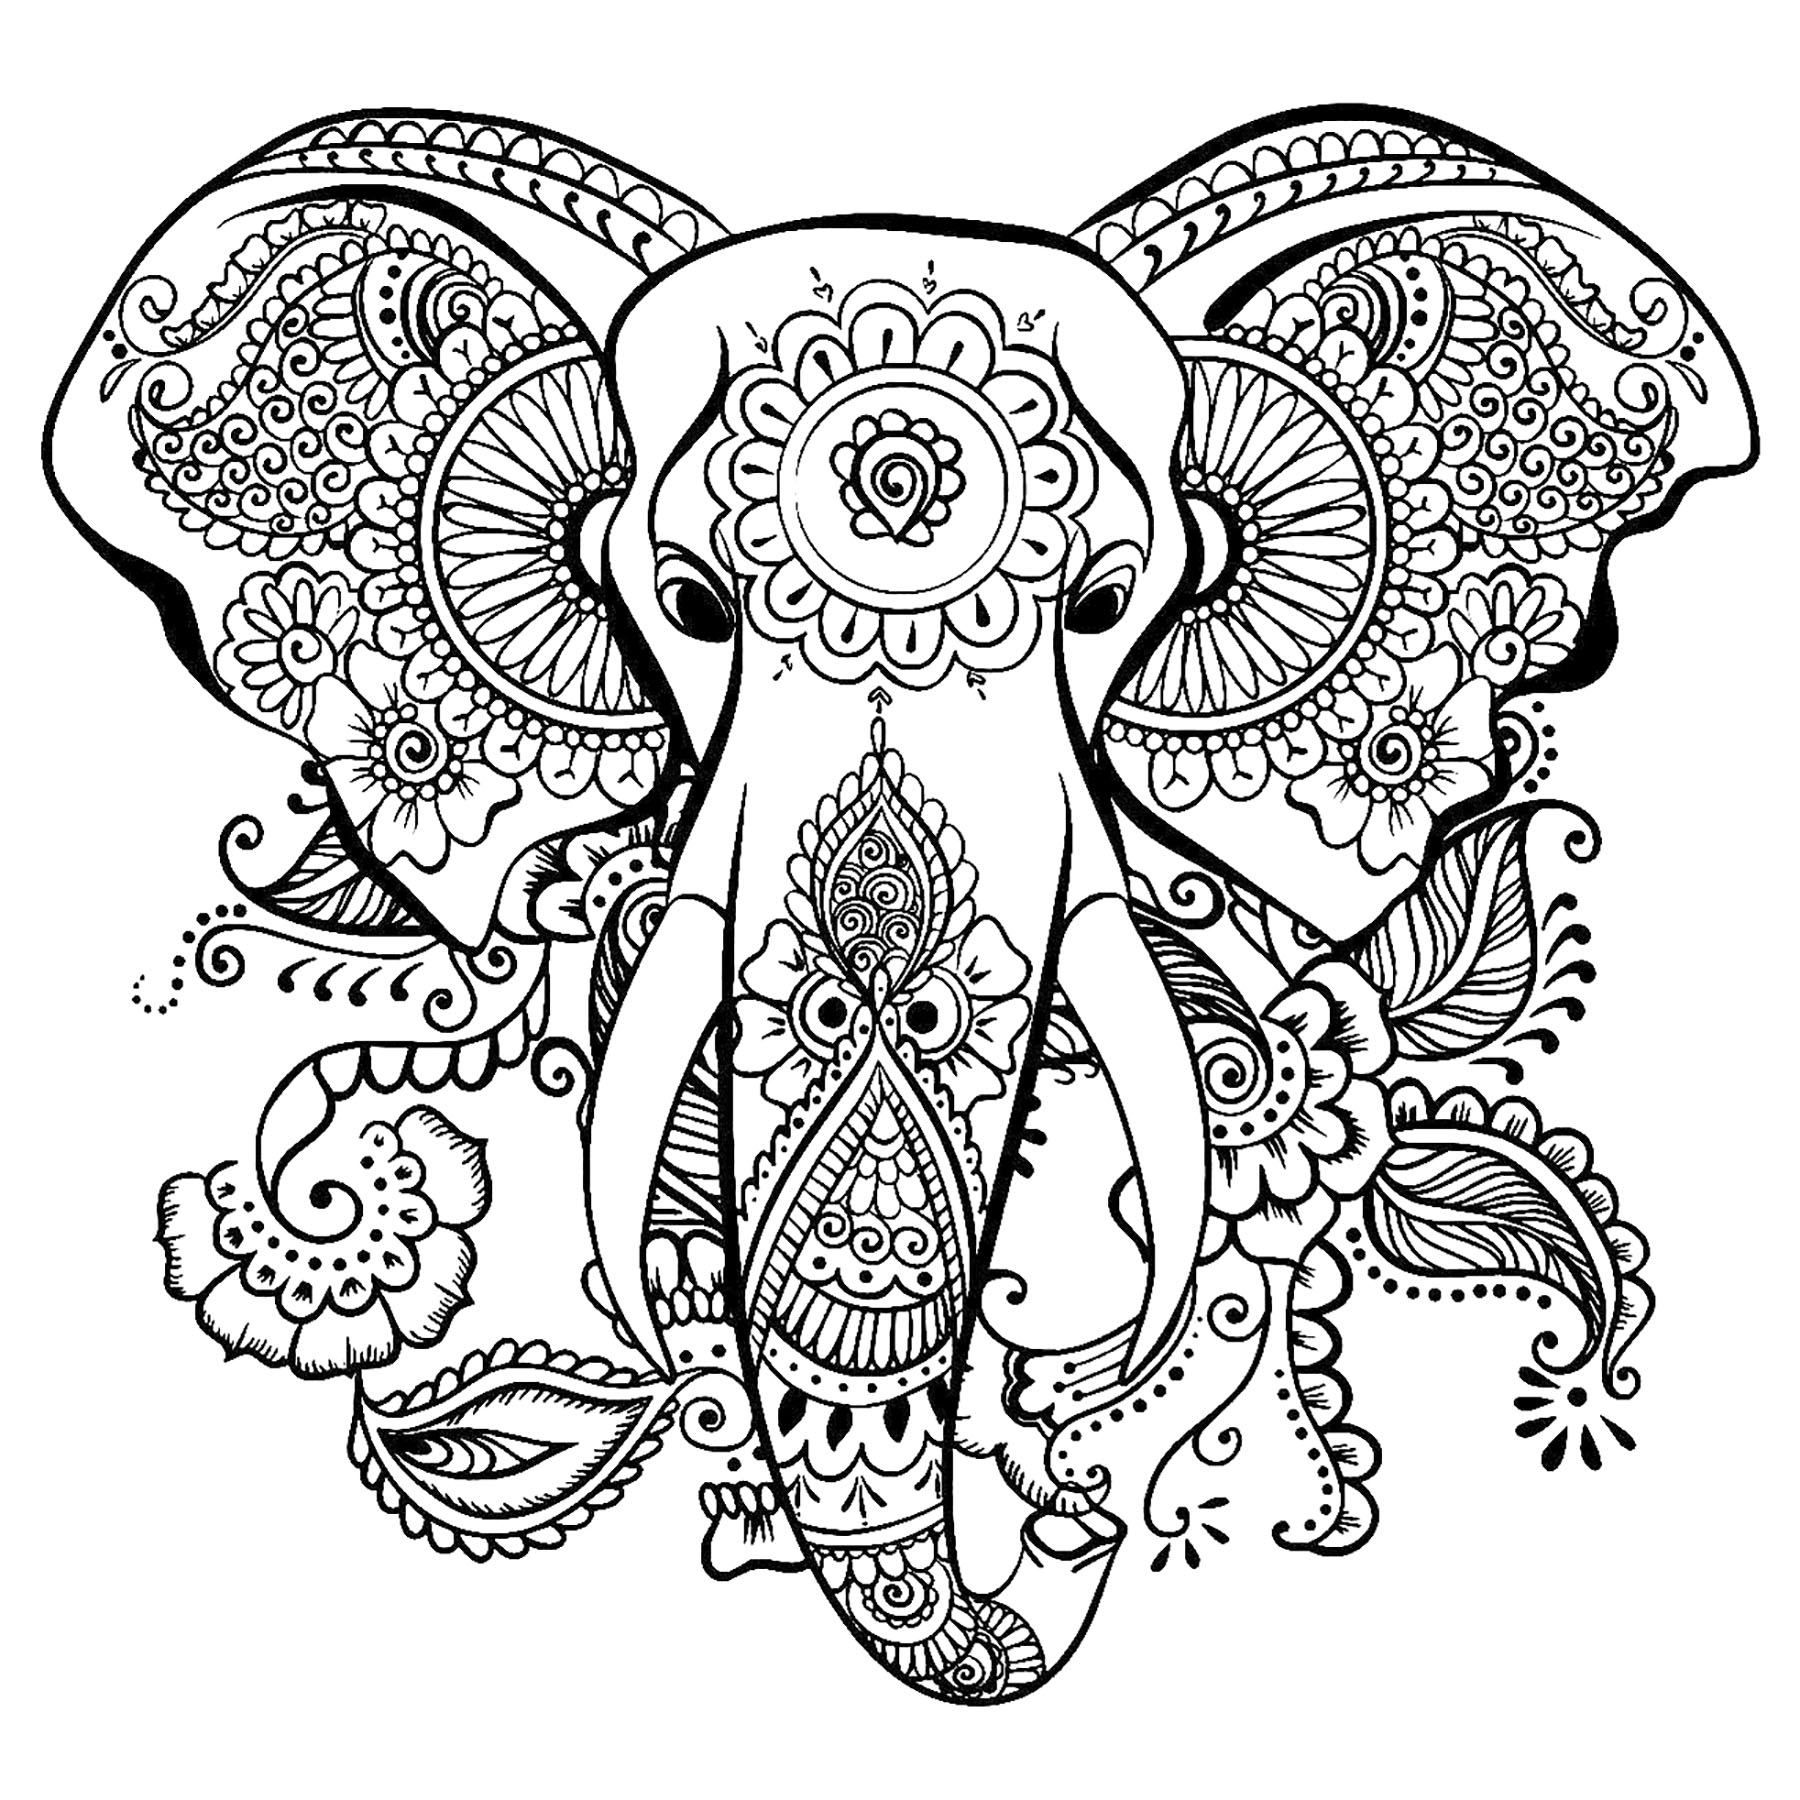 coloring book elephant images elephant coloring pages download and print elephant images elephant book coloring